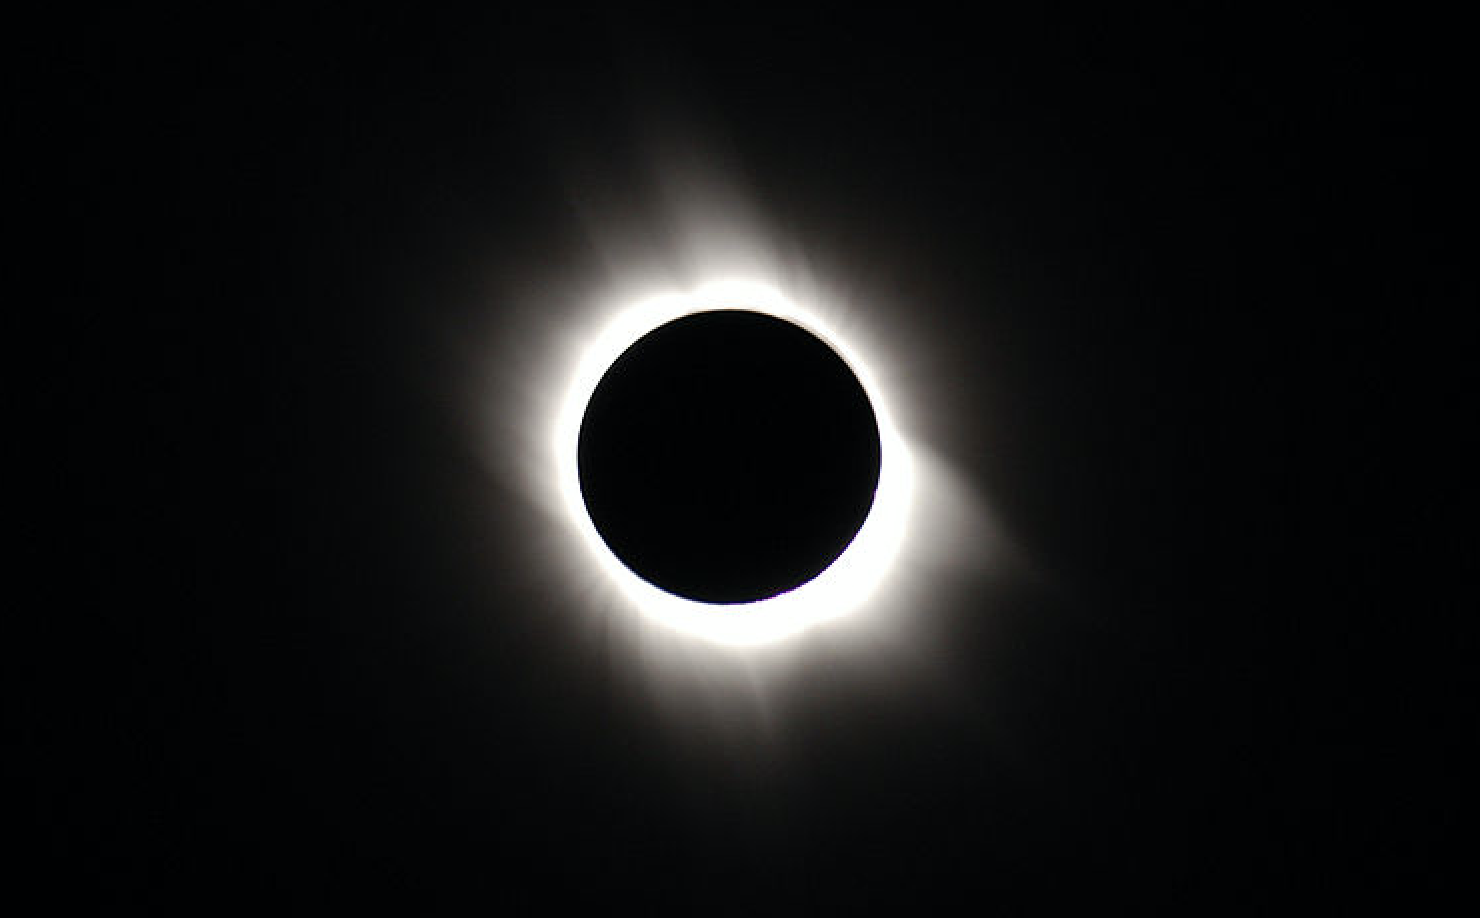 Solar eclipse teaching tools; where to get eclipse glasses